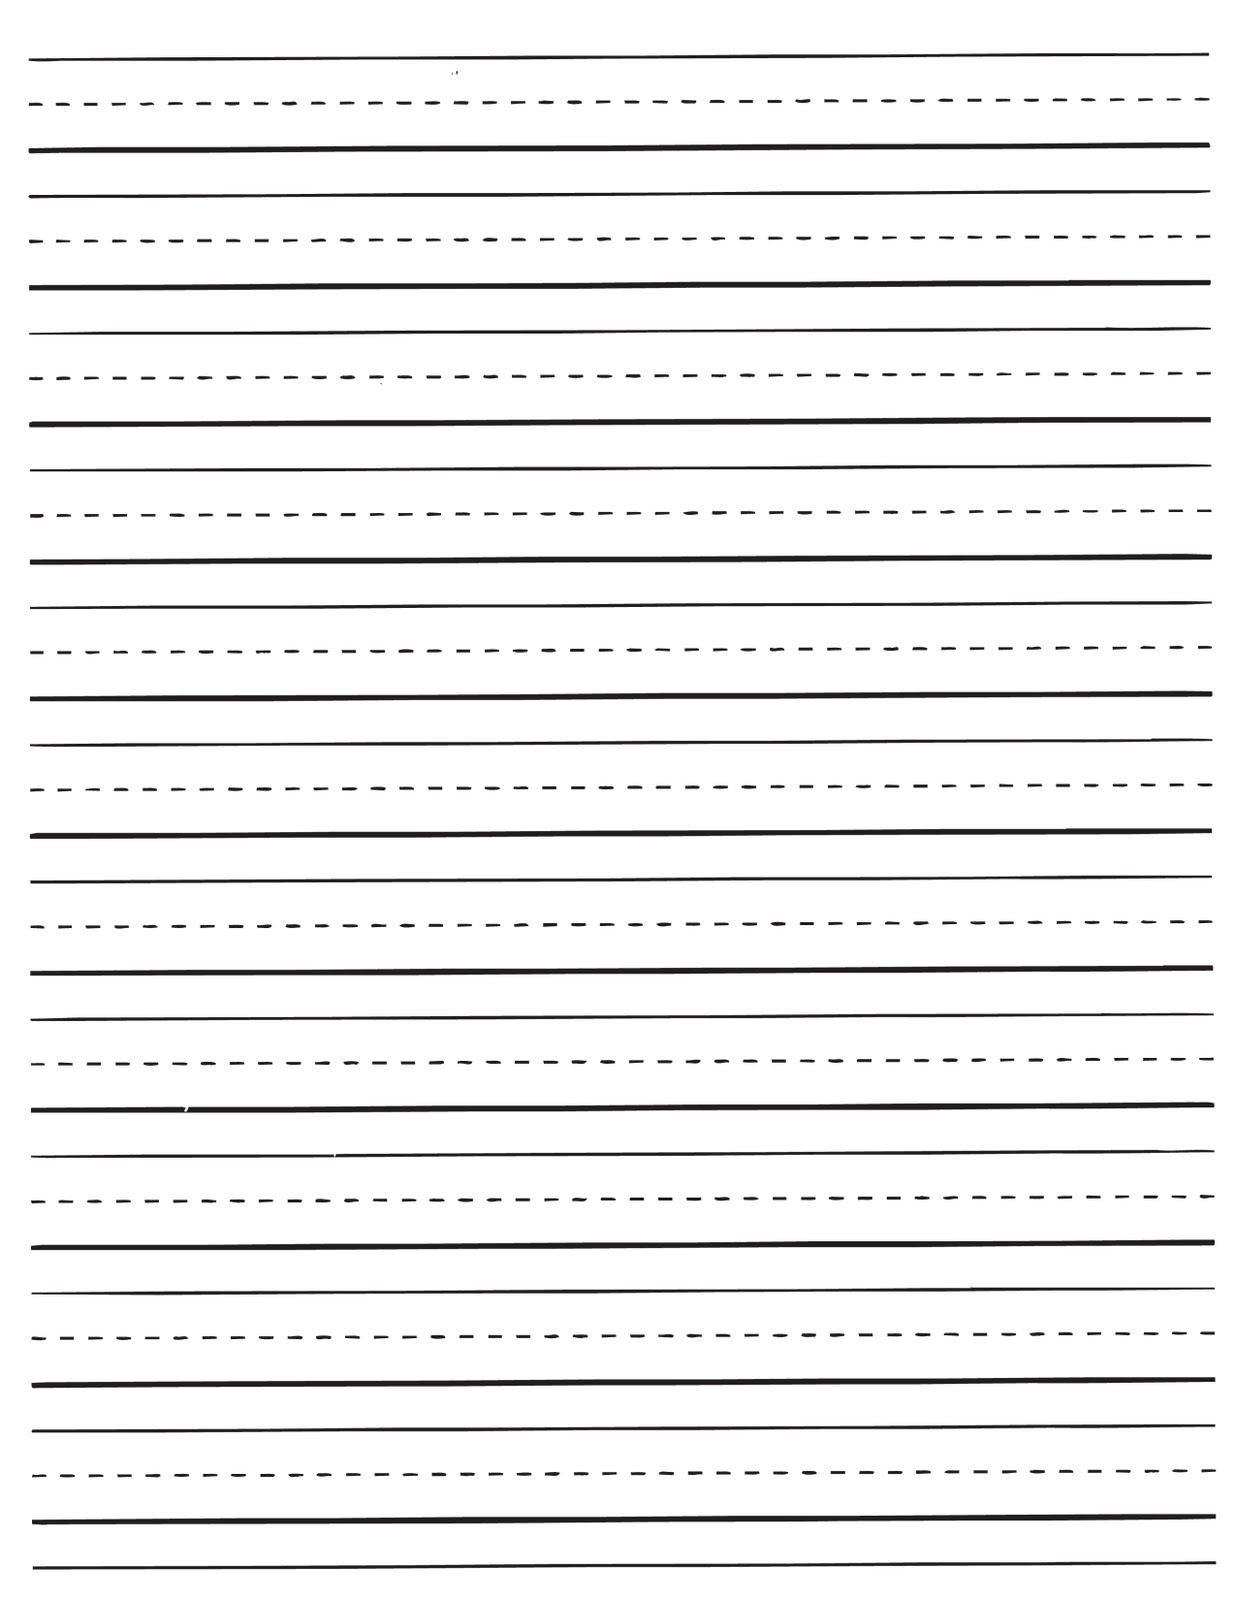 Free Printable Lined Paper For Kids Writing   World Of Label - Free Printable Lined Handwriting Paper